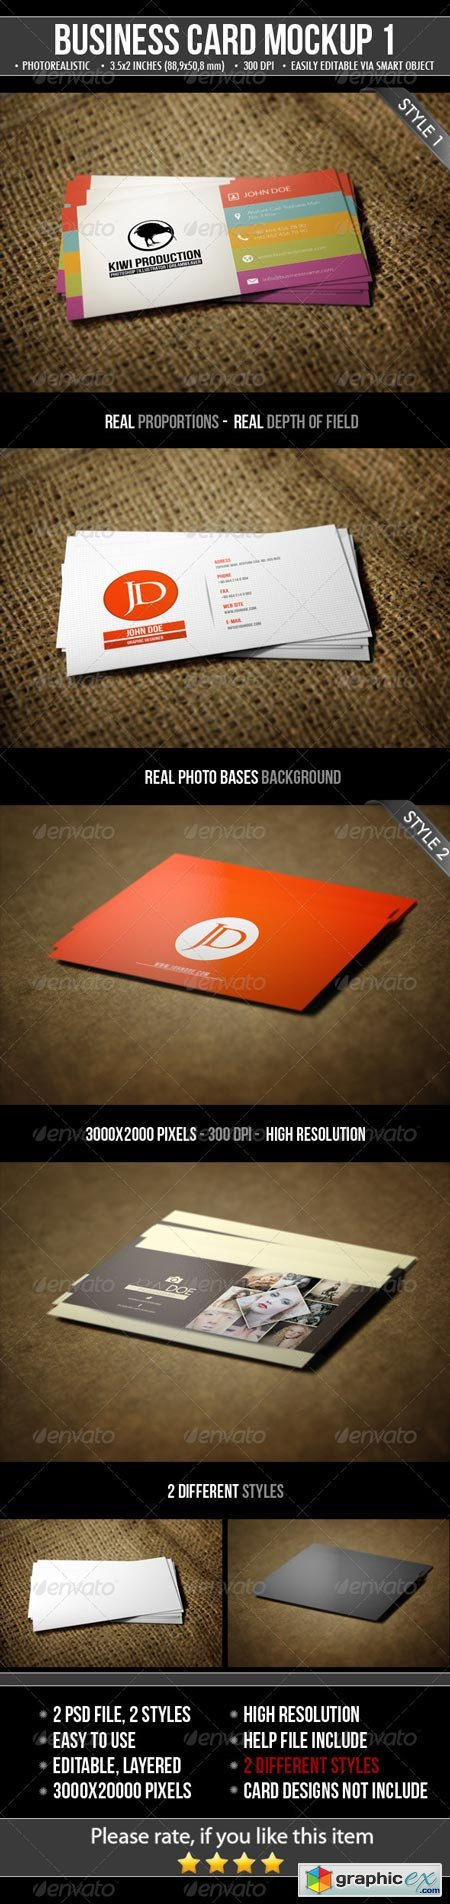 2 Realistic Business Card Mock-Ups